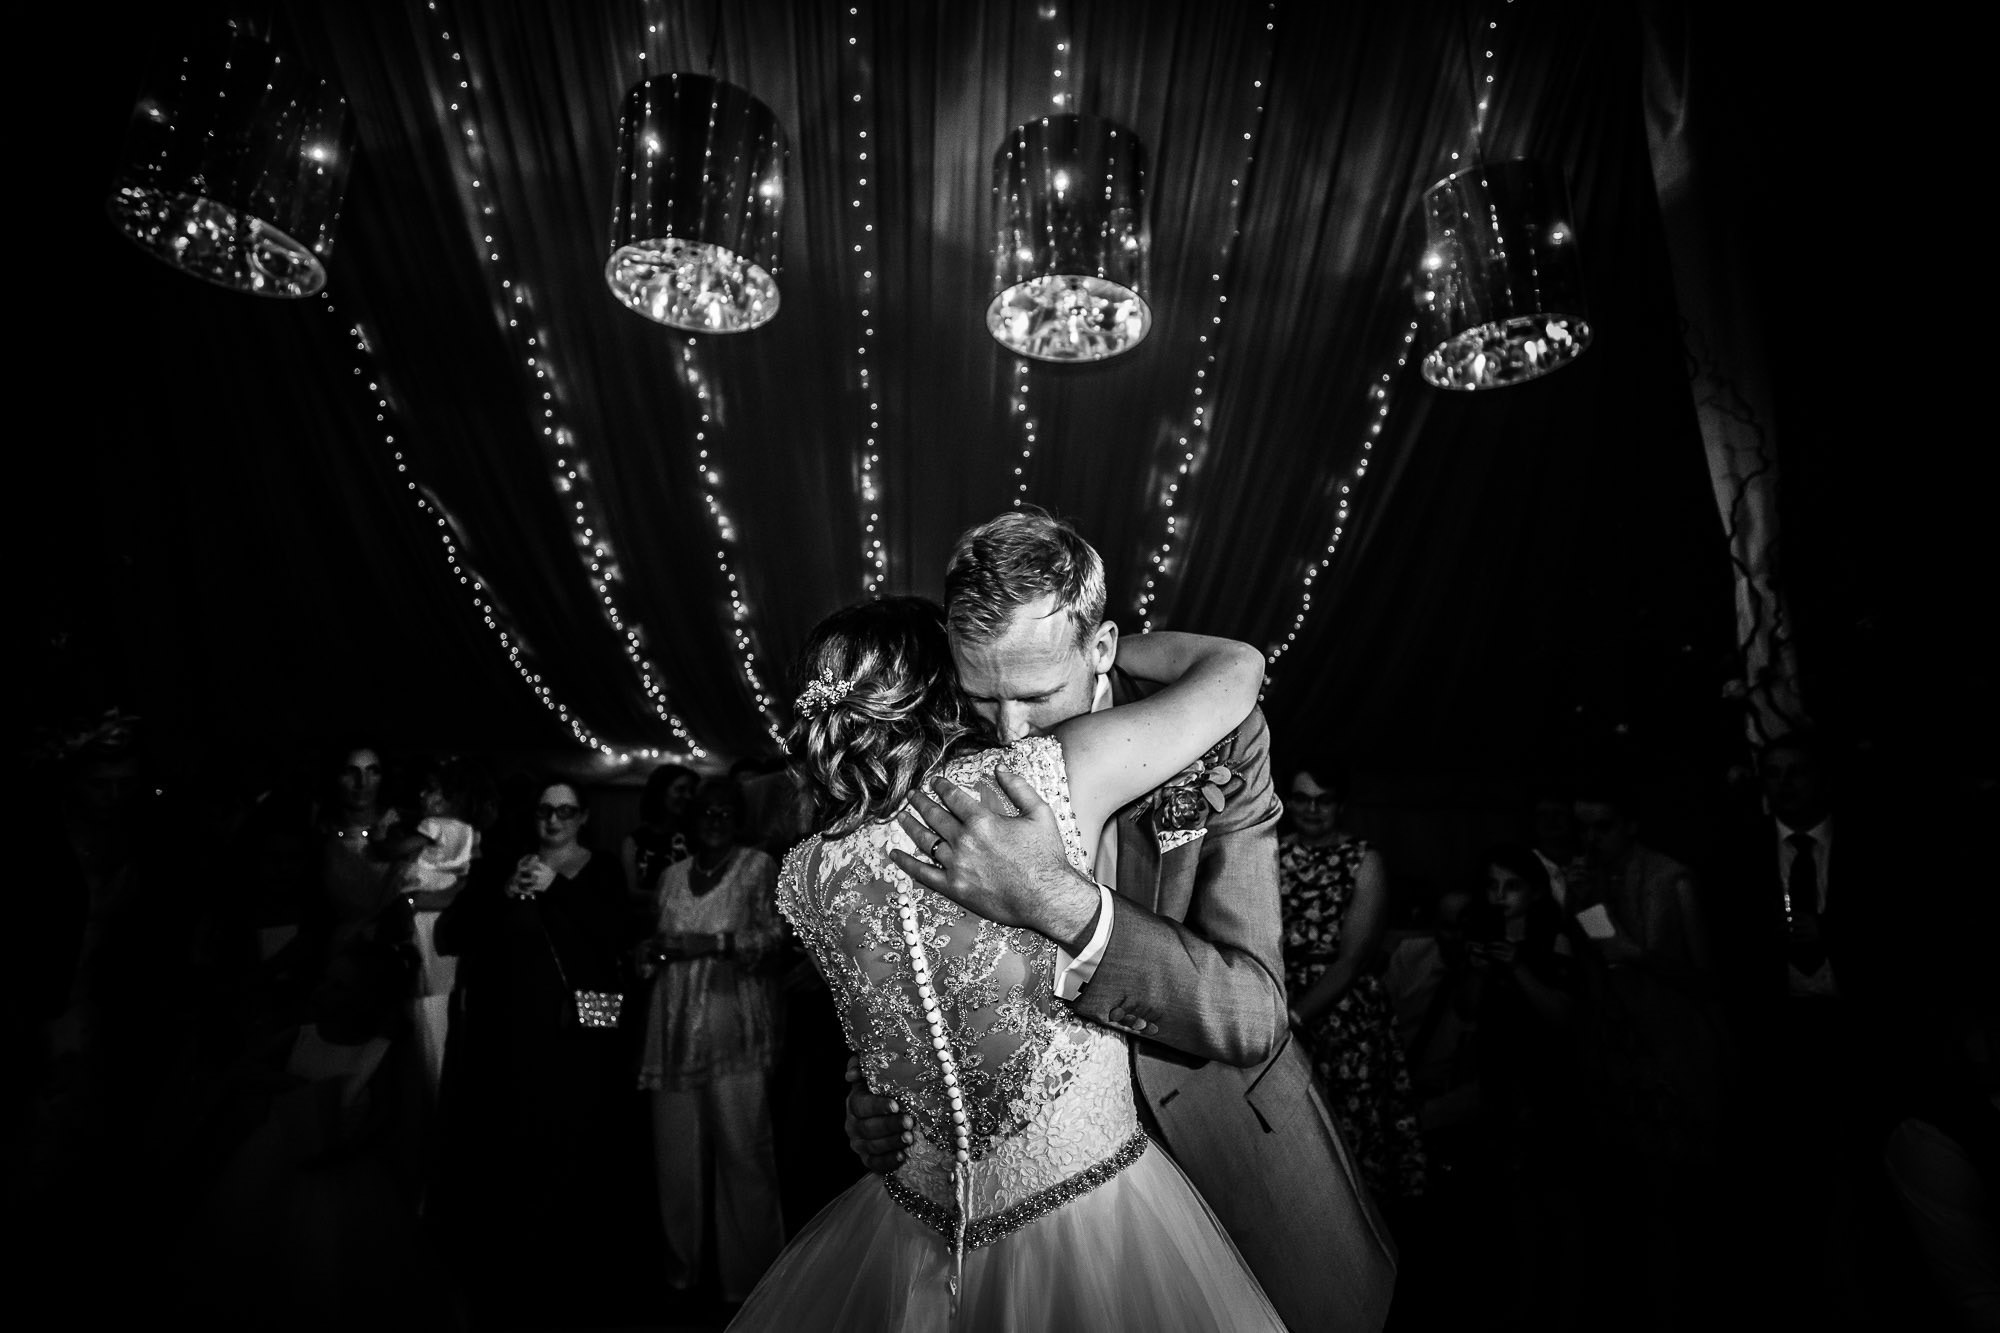 NineDots - The Ultimate Wedding Photography Community